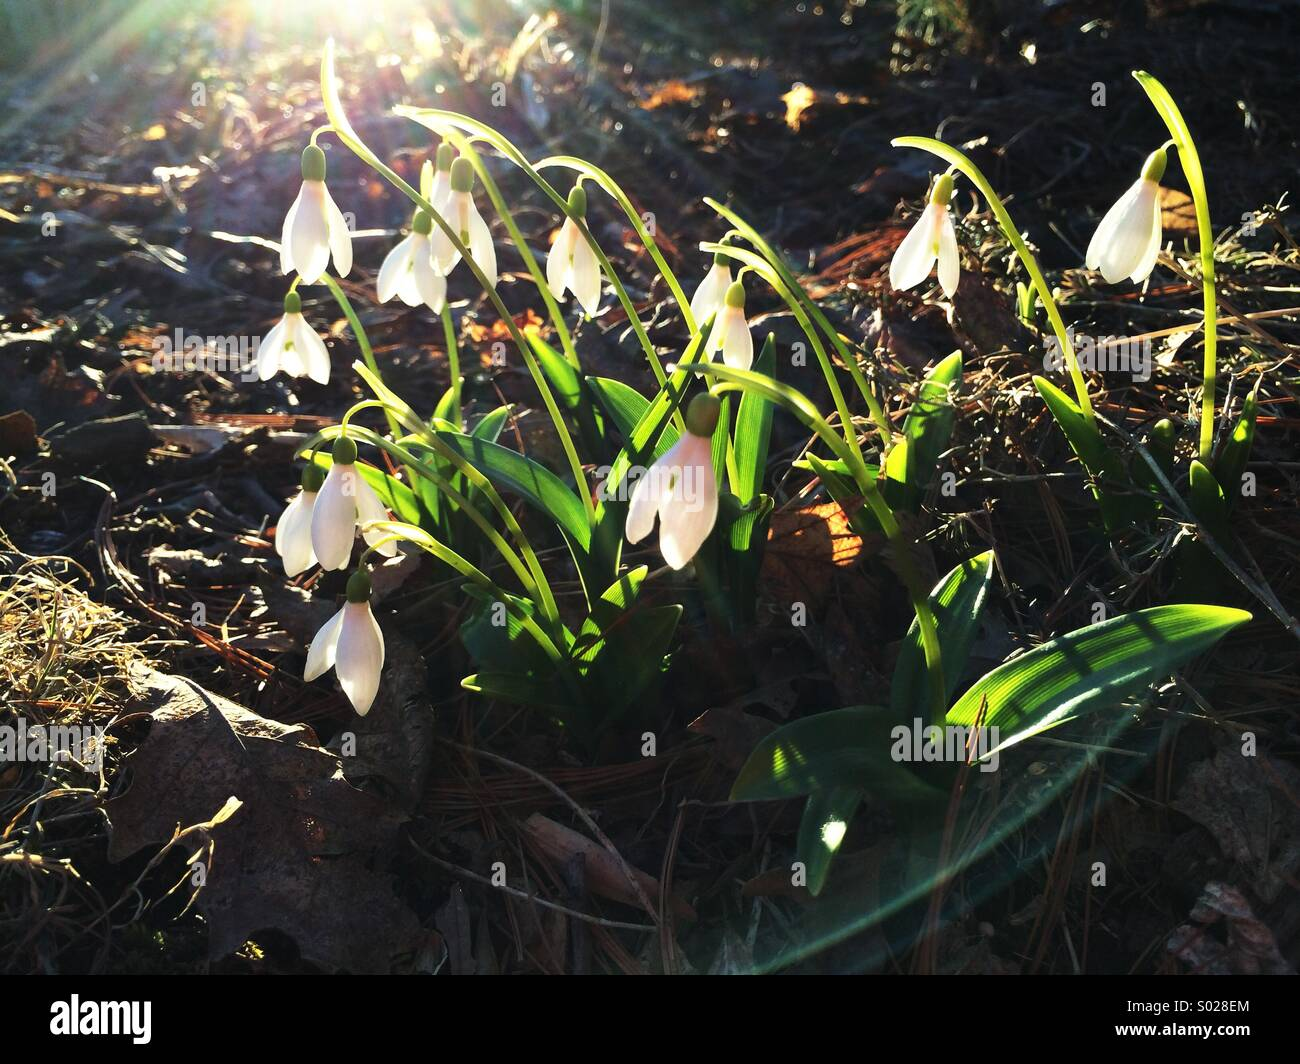 Snowdrops in bloom, an early spring flower. - Stock Image